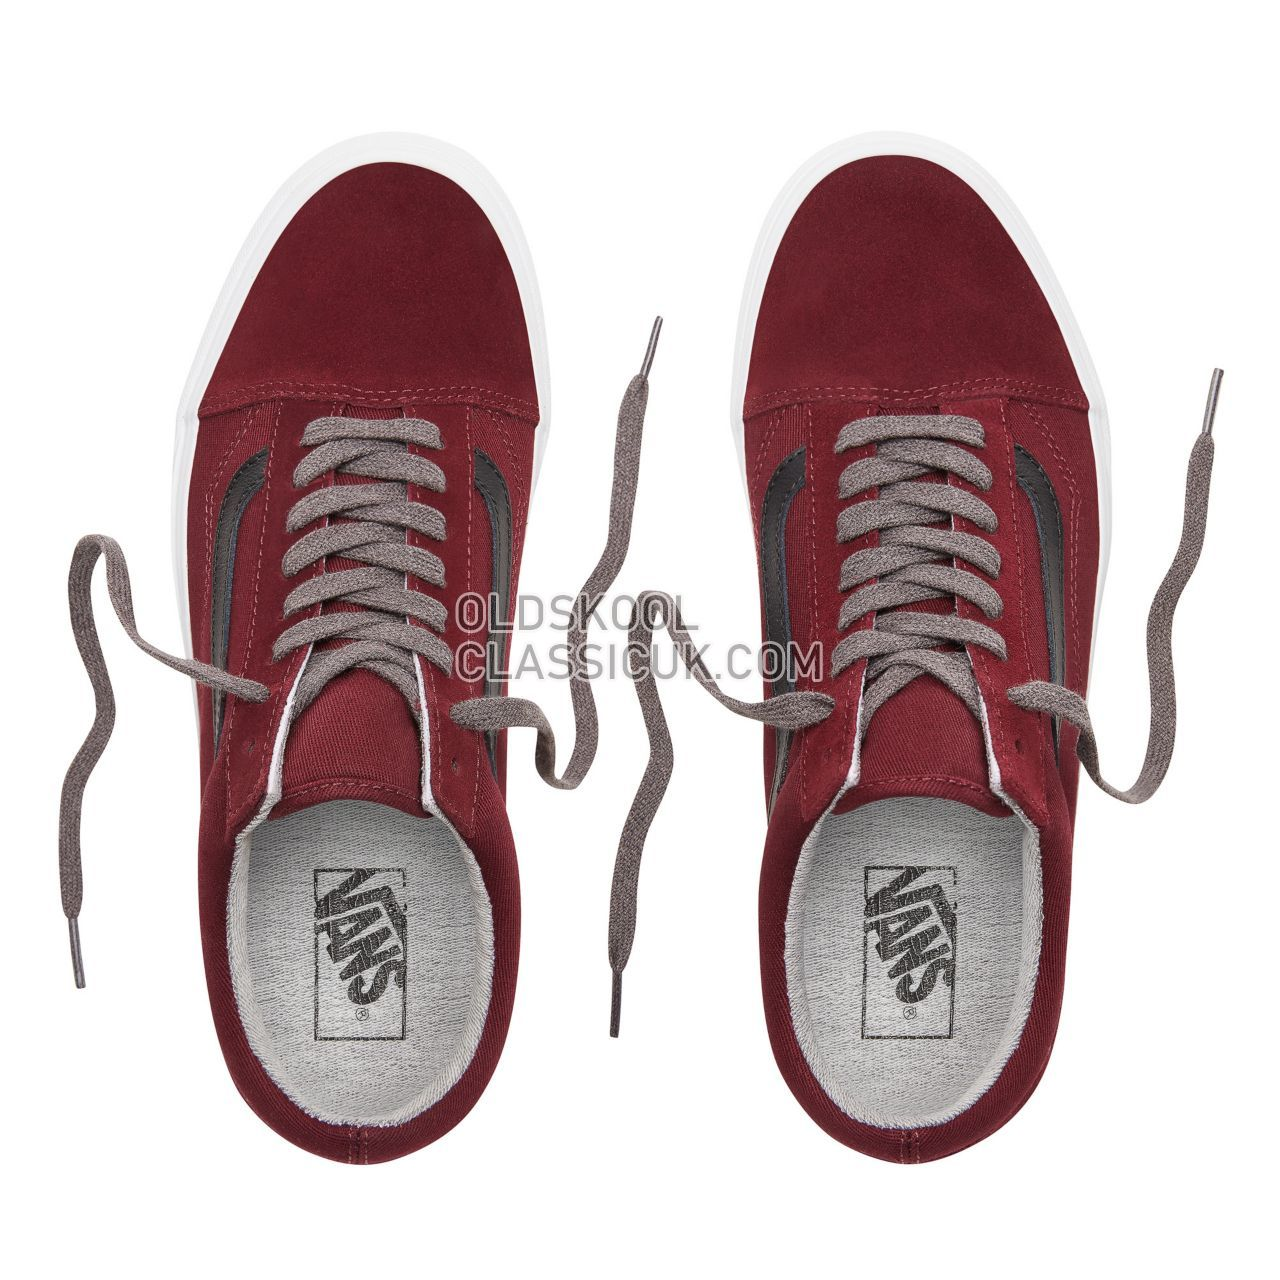 Vans Jersey Lace Old Skool Sneakers Mens Womens Unisex (Jersey Lace) Port Royale/Black VN0A38G1UP7 Shoes